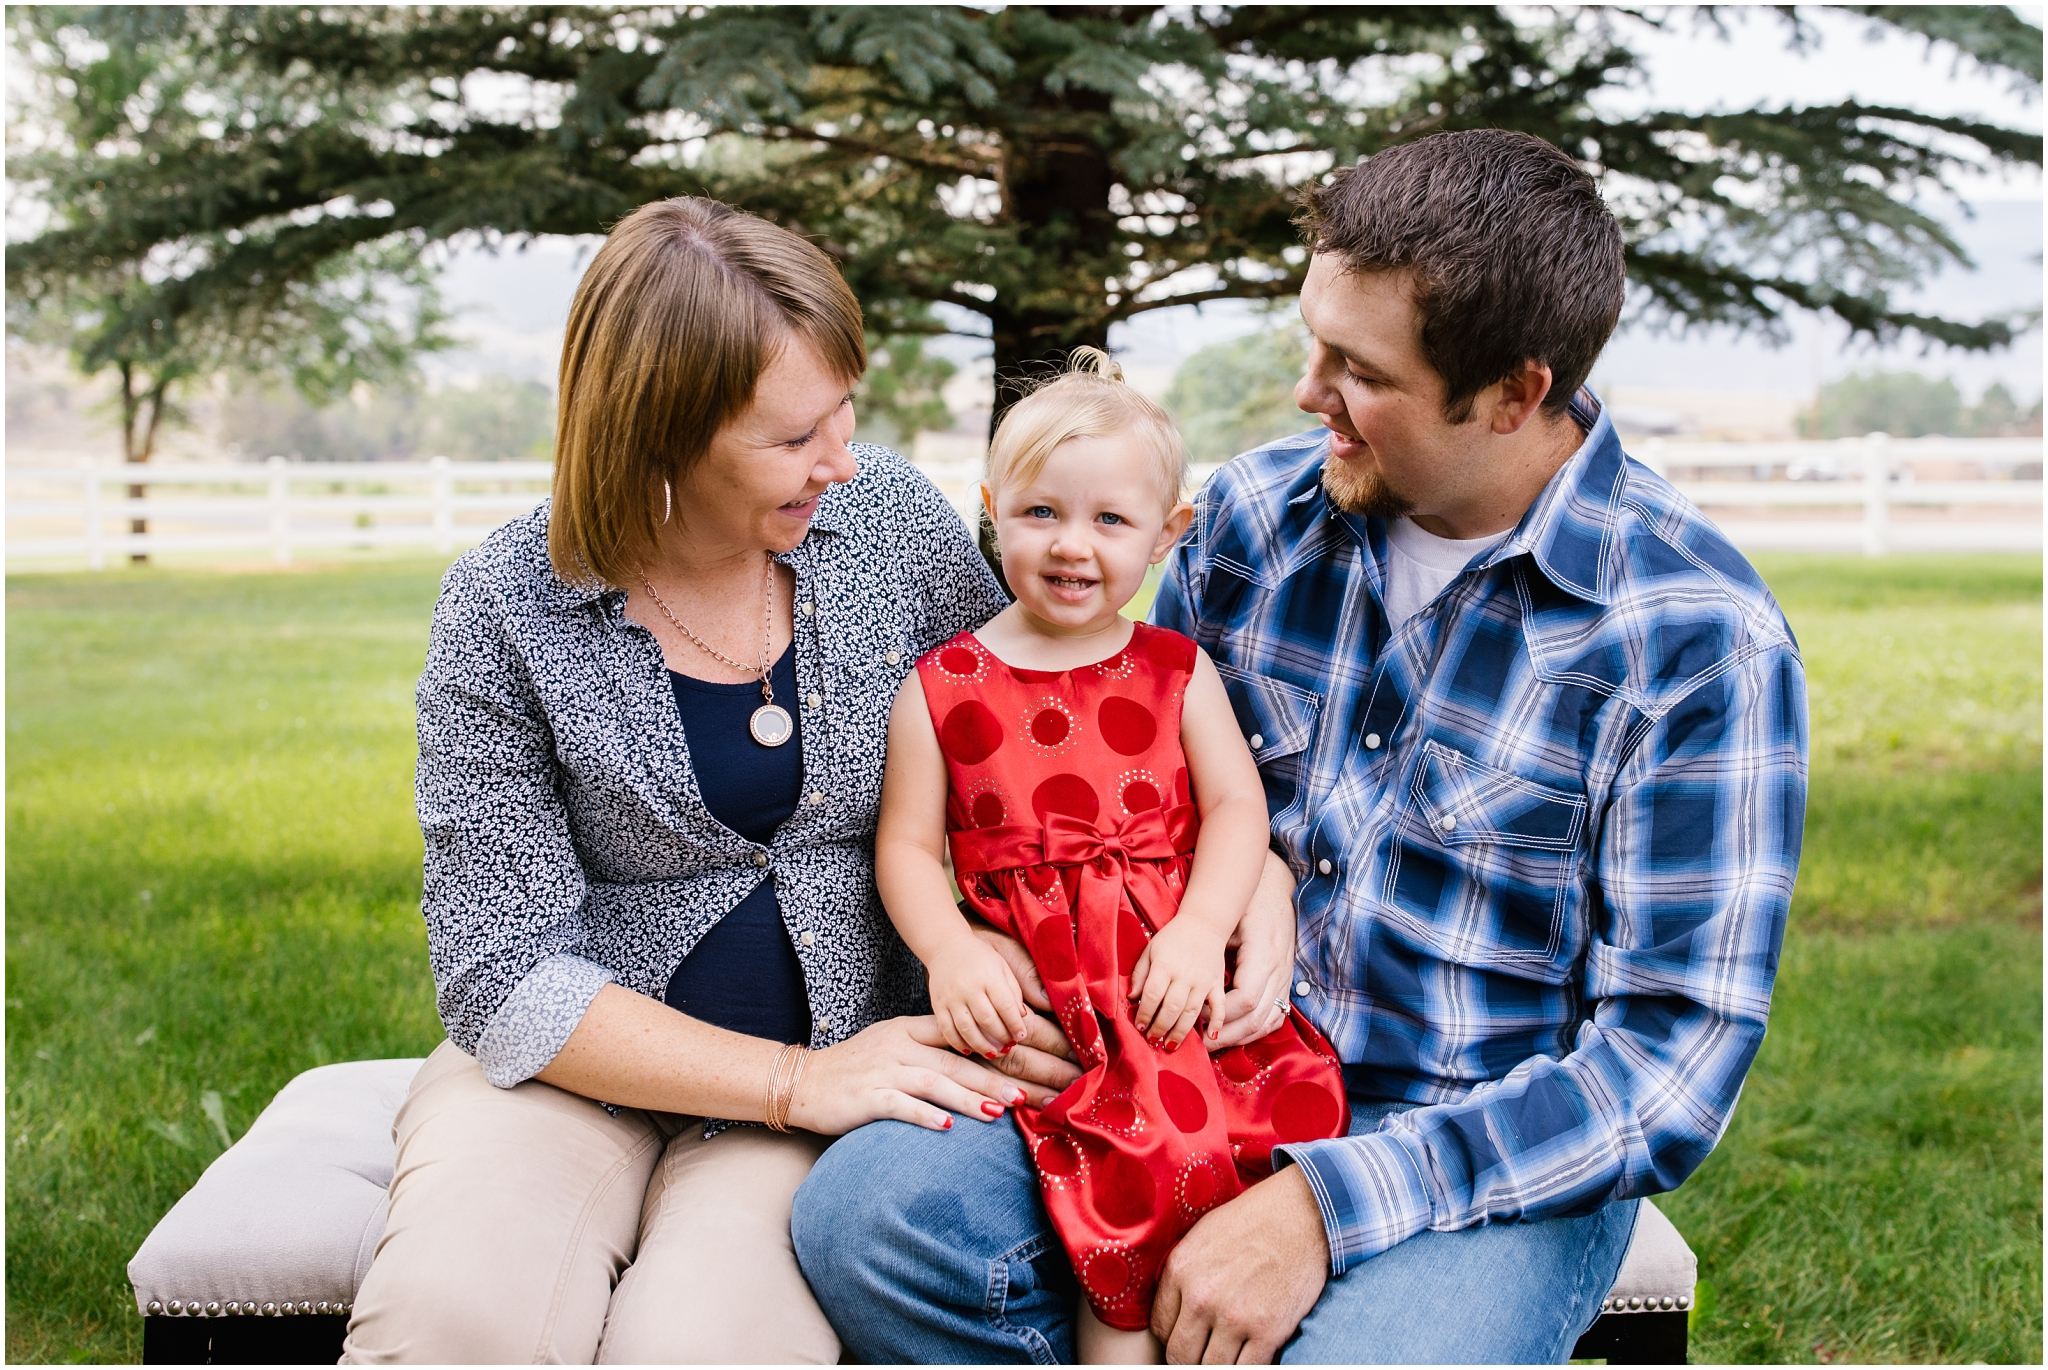 Brinkerhoff-39_Lizzie-B-Imagery-Utah-Family-Photographer-Central-Utah-Photographer-Utah-County-Extended-Family-Session.jpg